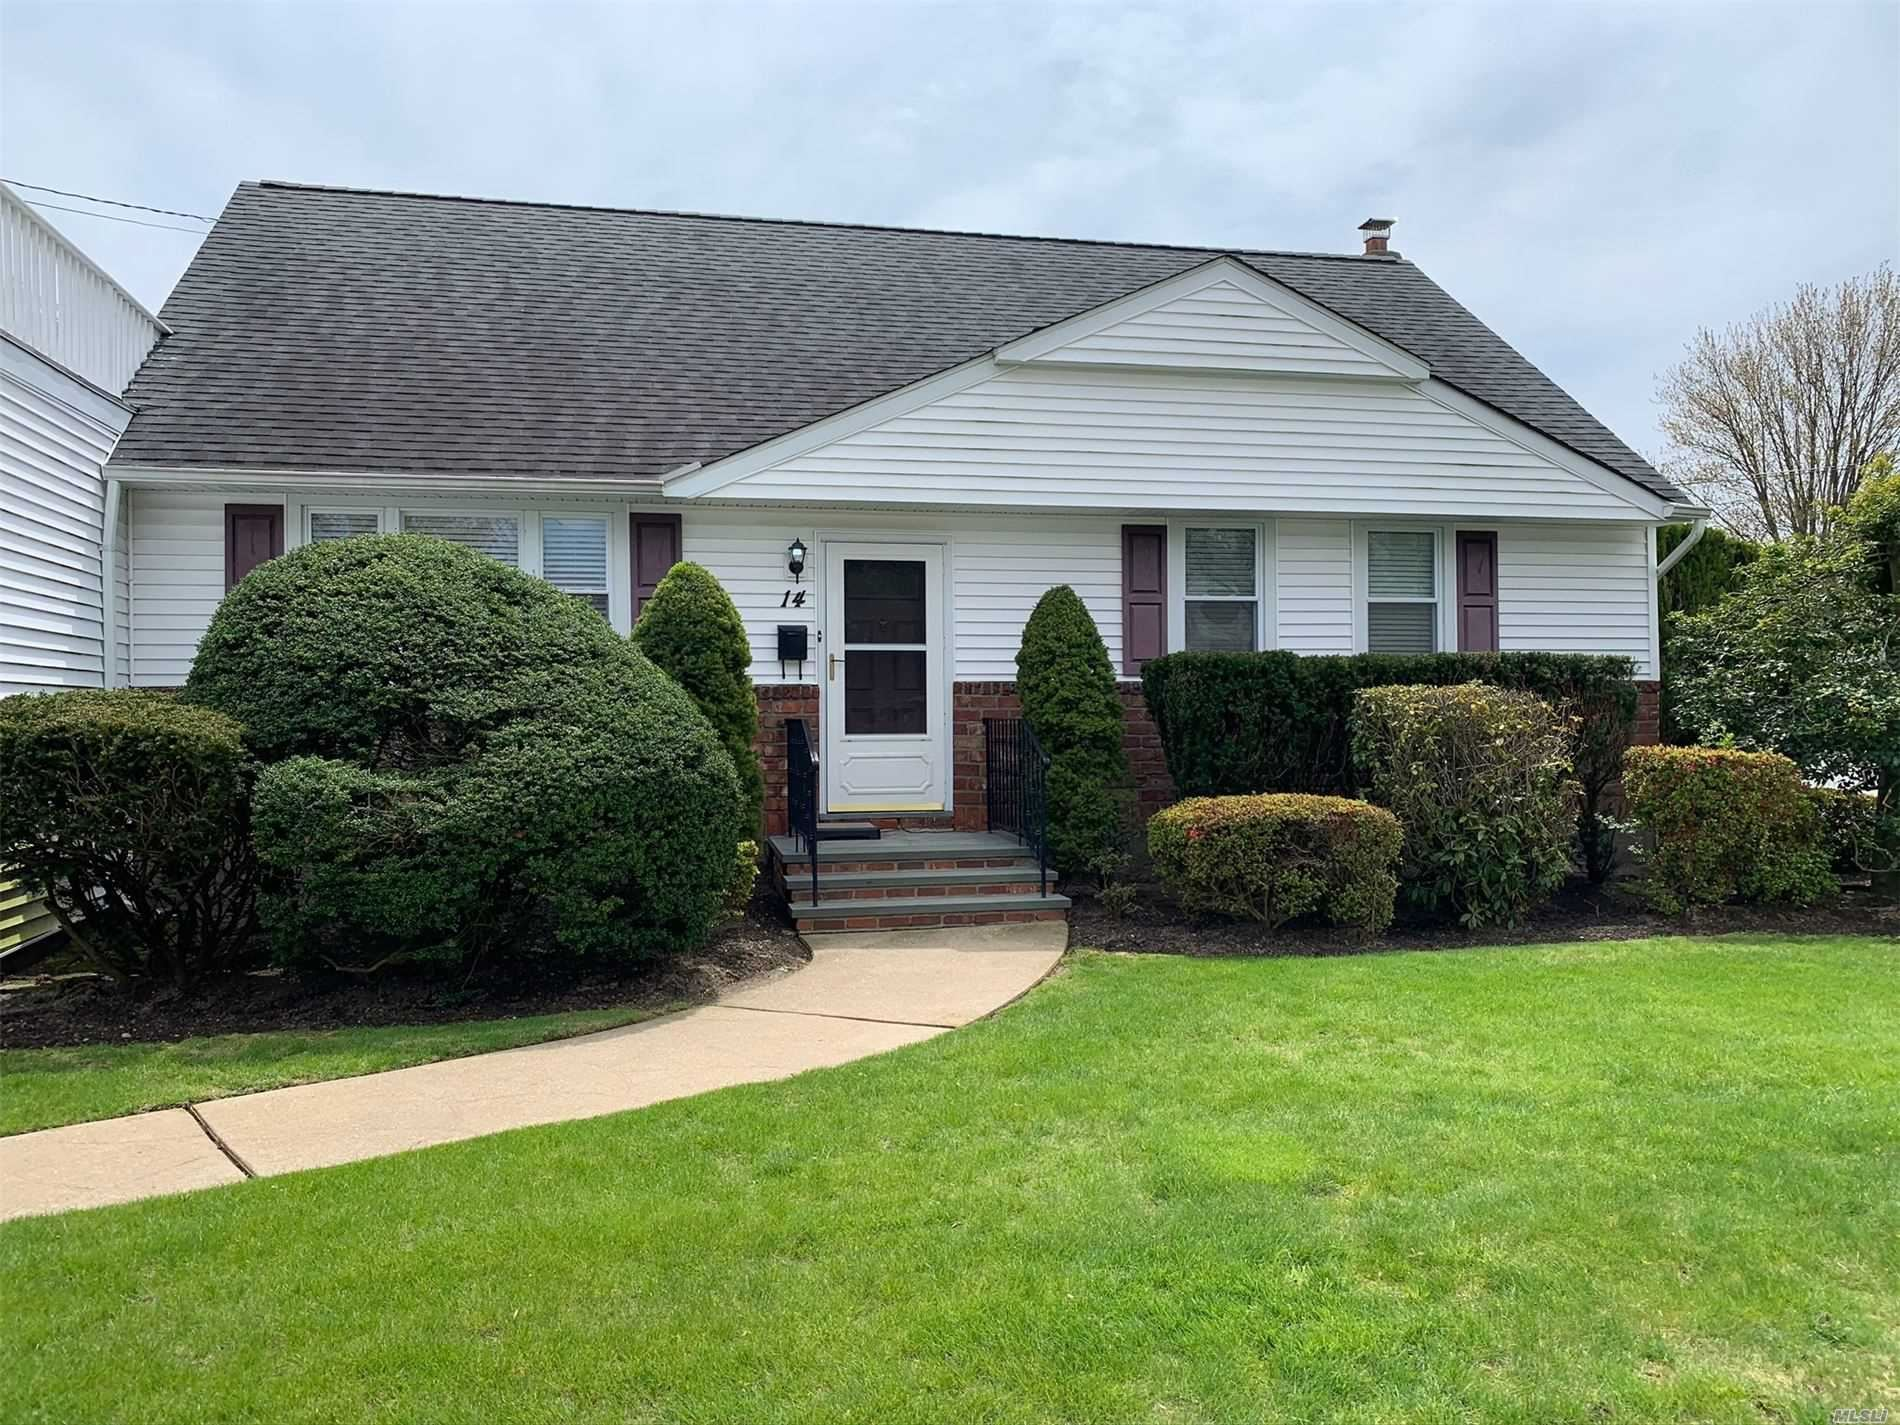 14 Burling Lane S, West Islip, NY 11795 - MLS#: 3235962